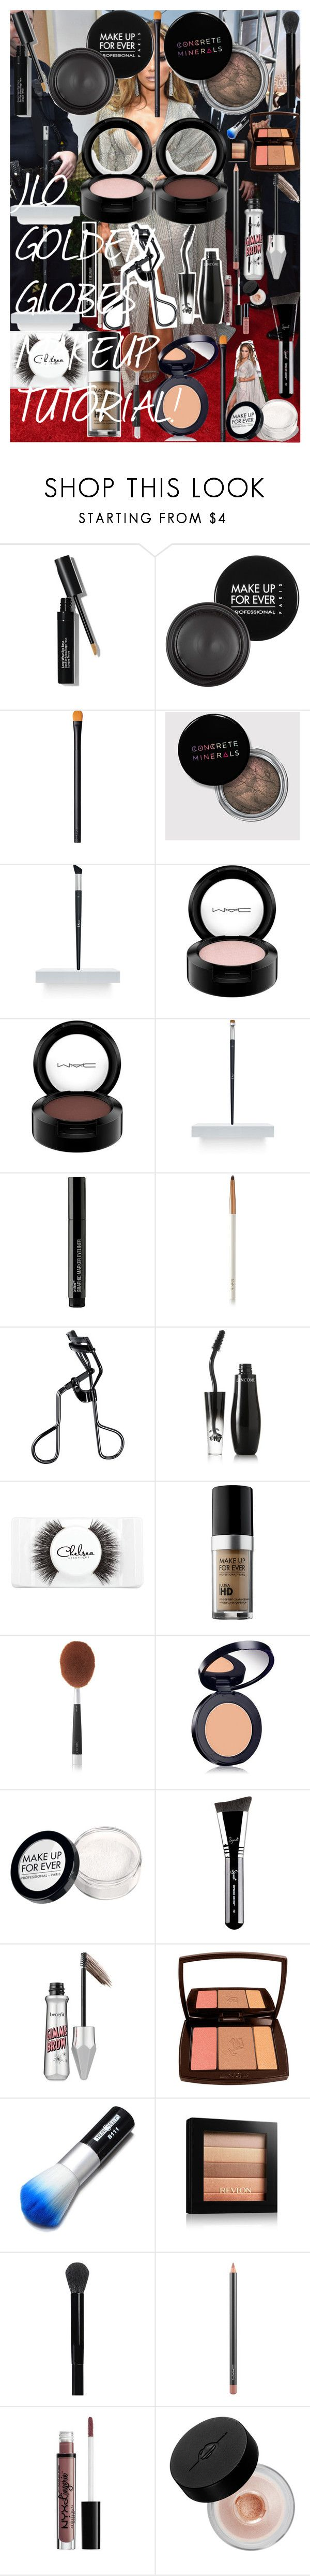 """JLO GOLDEN GLOBES MAKEUP TUTORIAL!"" by oroartye-1 on Polyvore featuring beauty, Bobbi Brown Cosmetics, MAKE UP FOR EVER, NARS Cosmetics, Christian Dior, MAC Cosmetics, Wet n Wild, lilah b., Tweezerman and Lancôme"